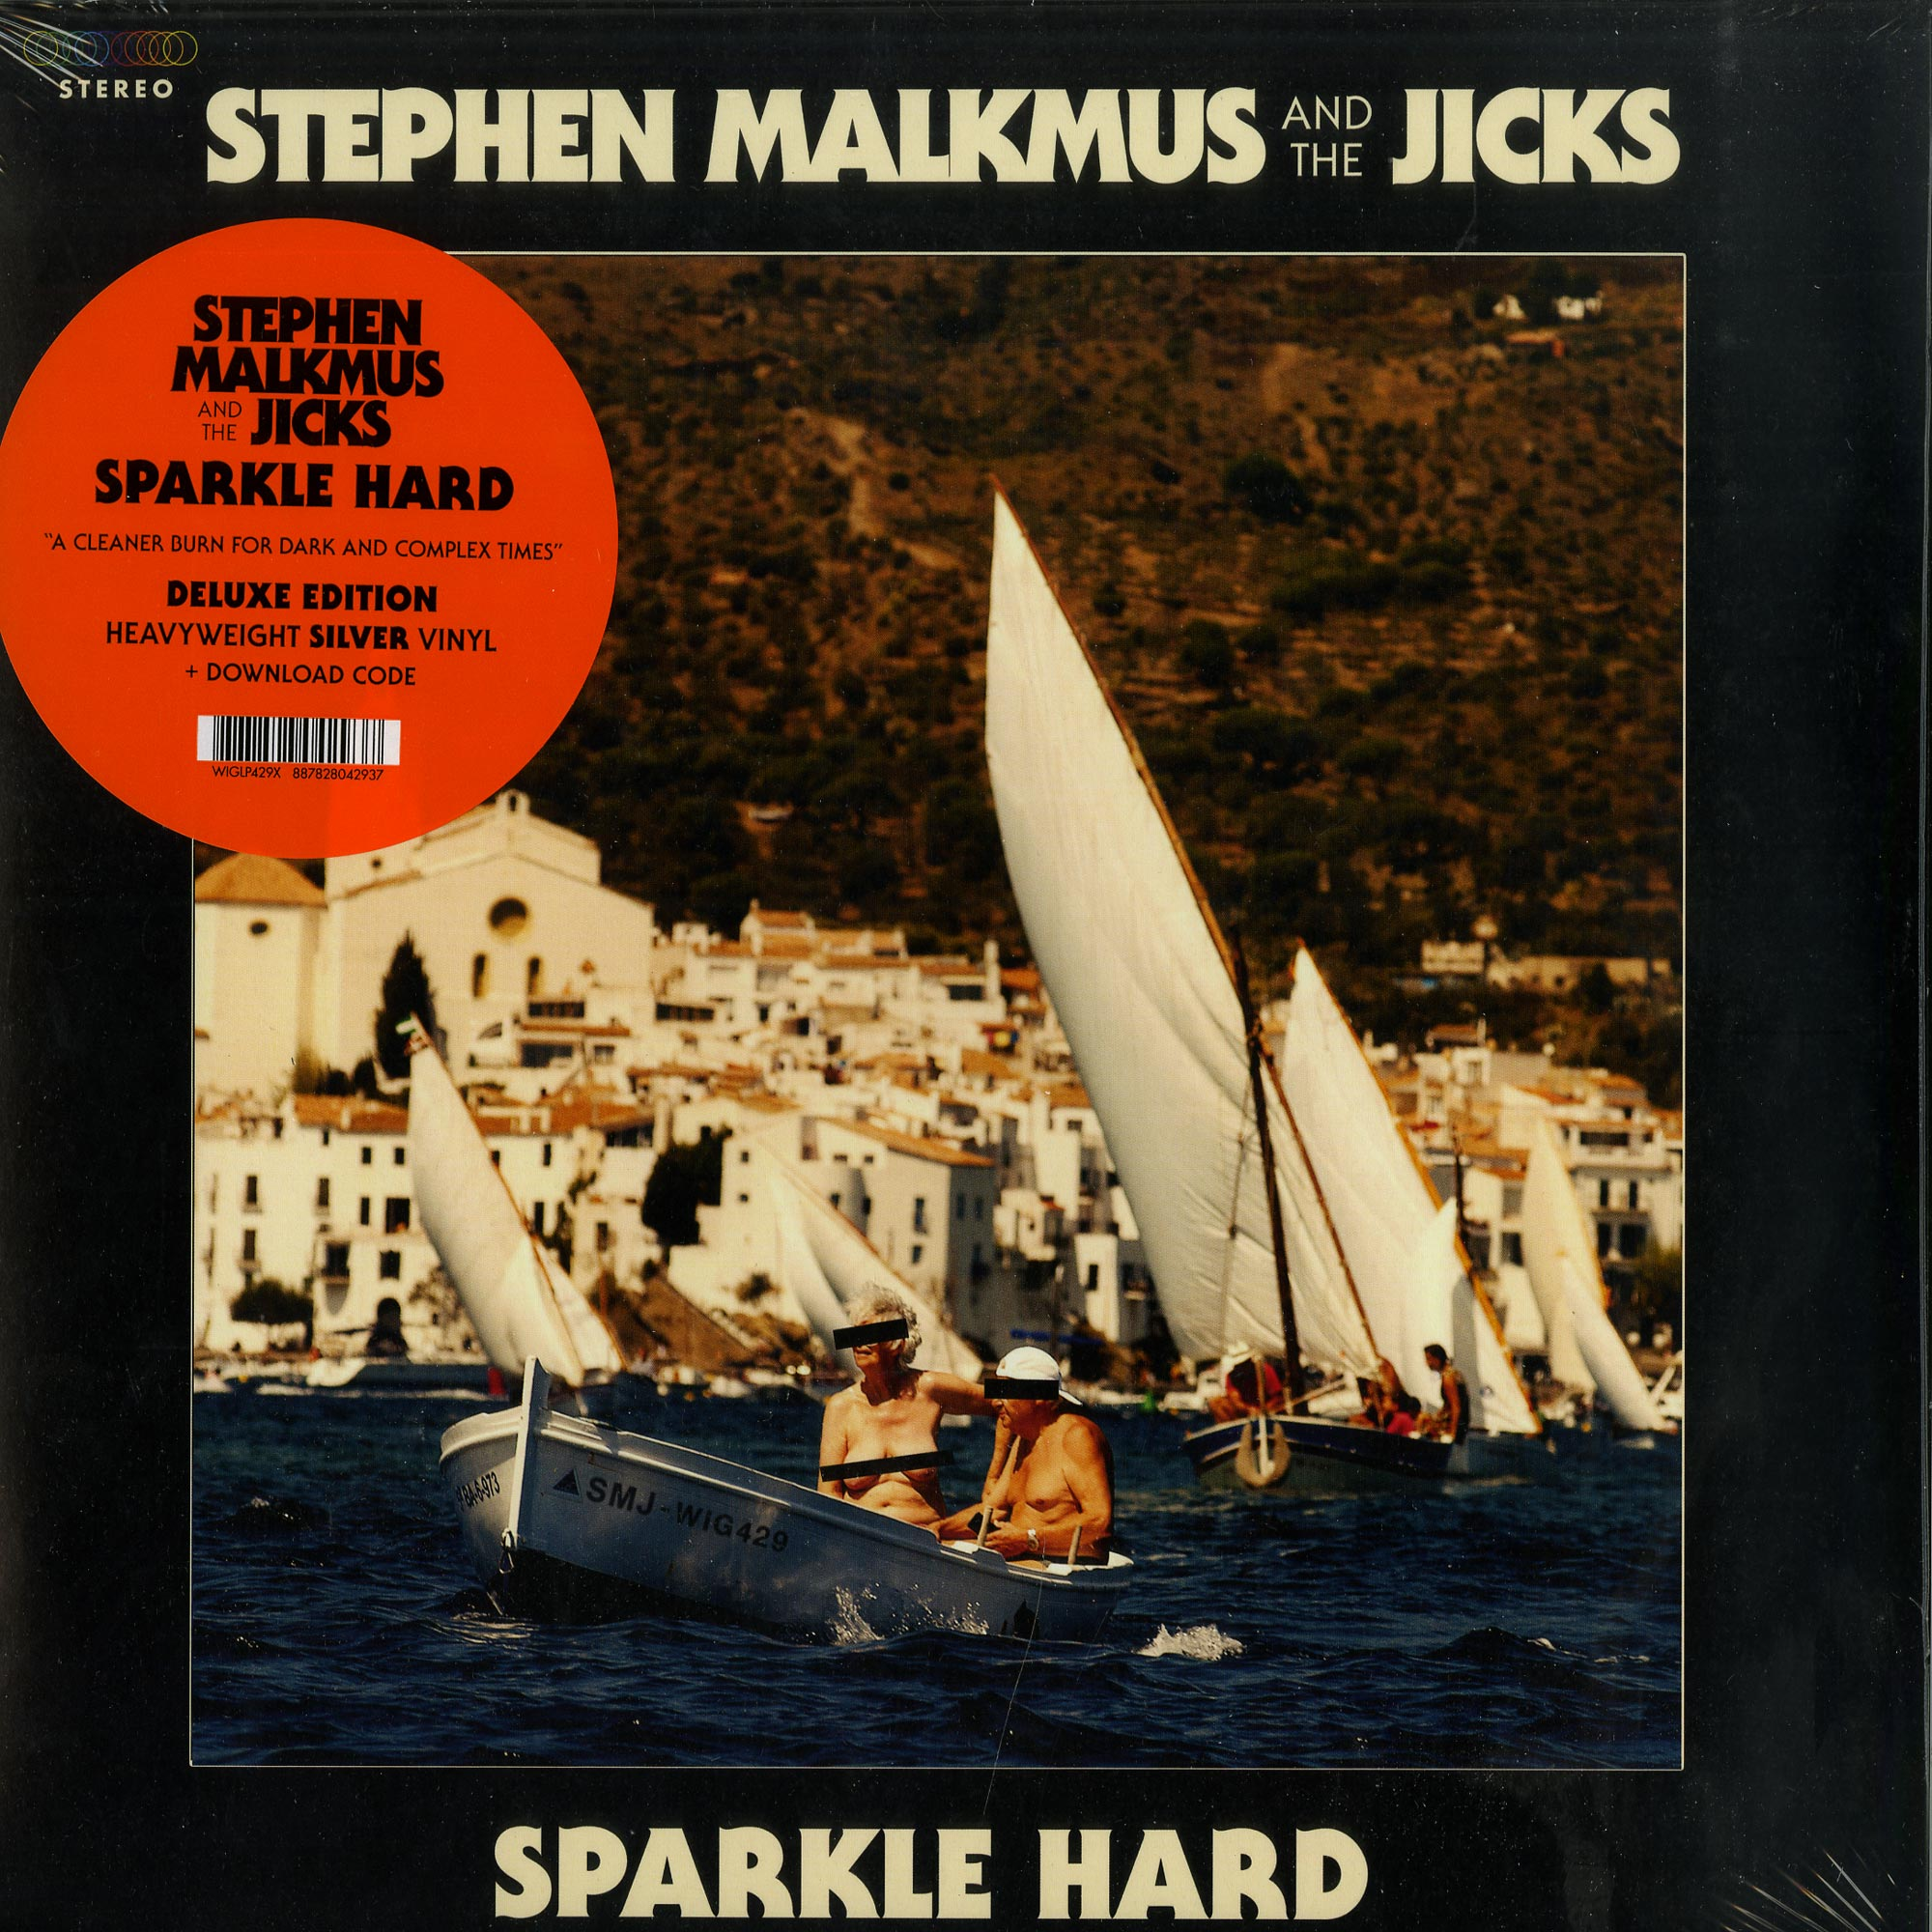 Stephen Malkmus & The Jicks - SPARKLE HARD